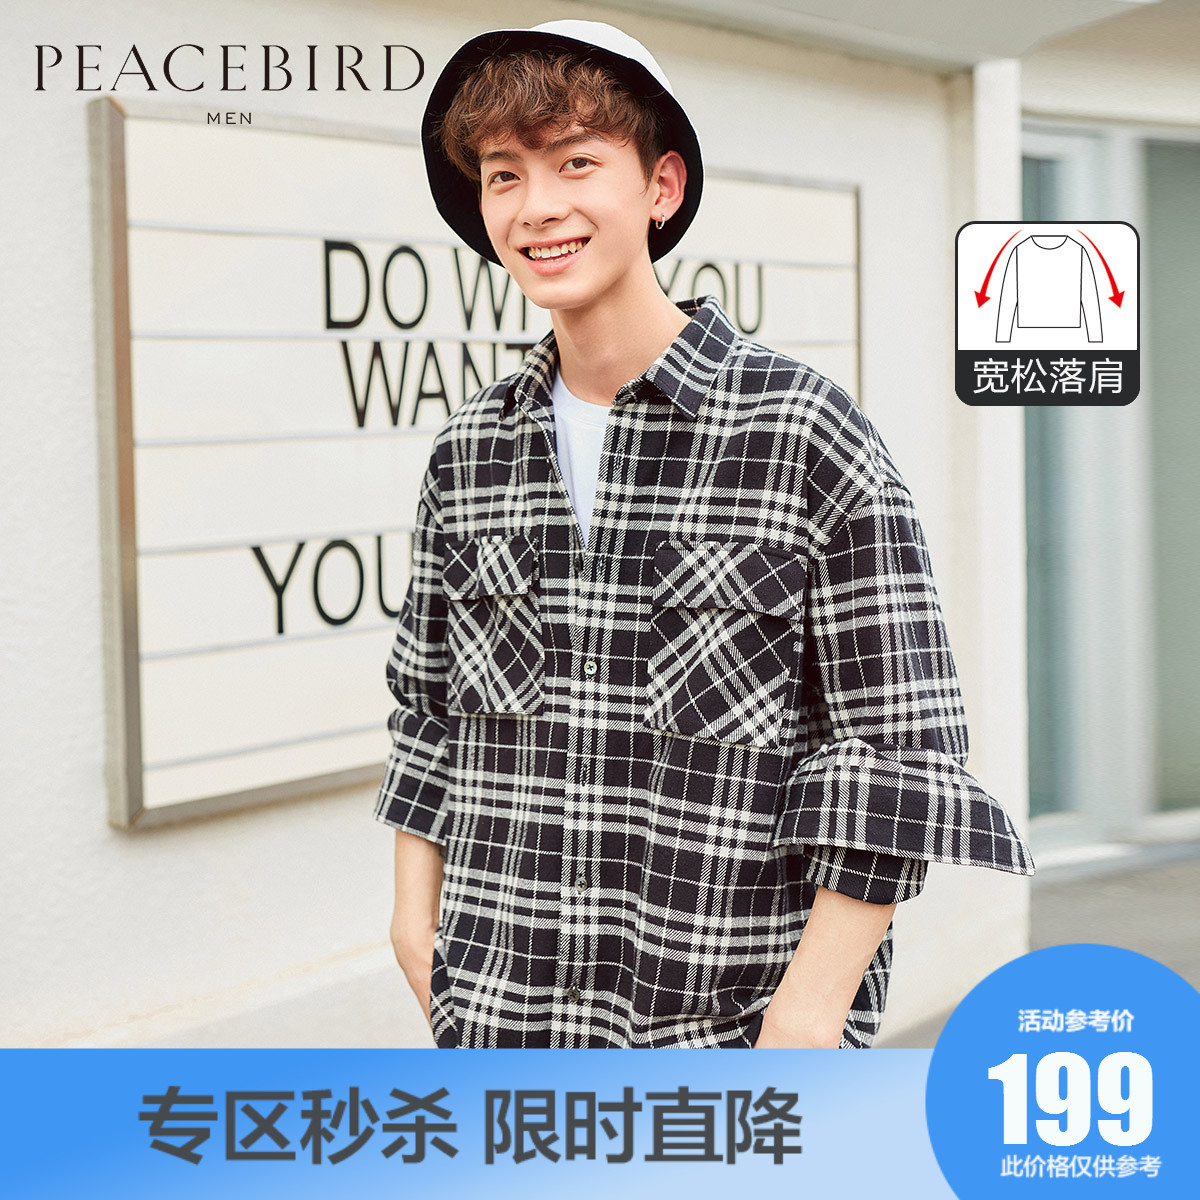 Taiping bird men's new spring black and white plaid work clothes long sleeve shirt Korean shirt jacket fashion